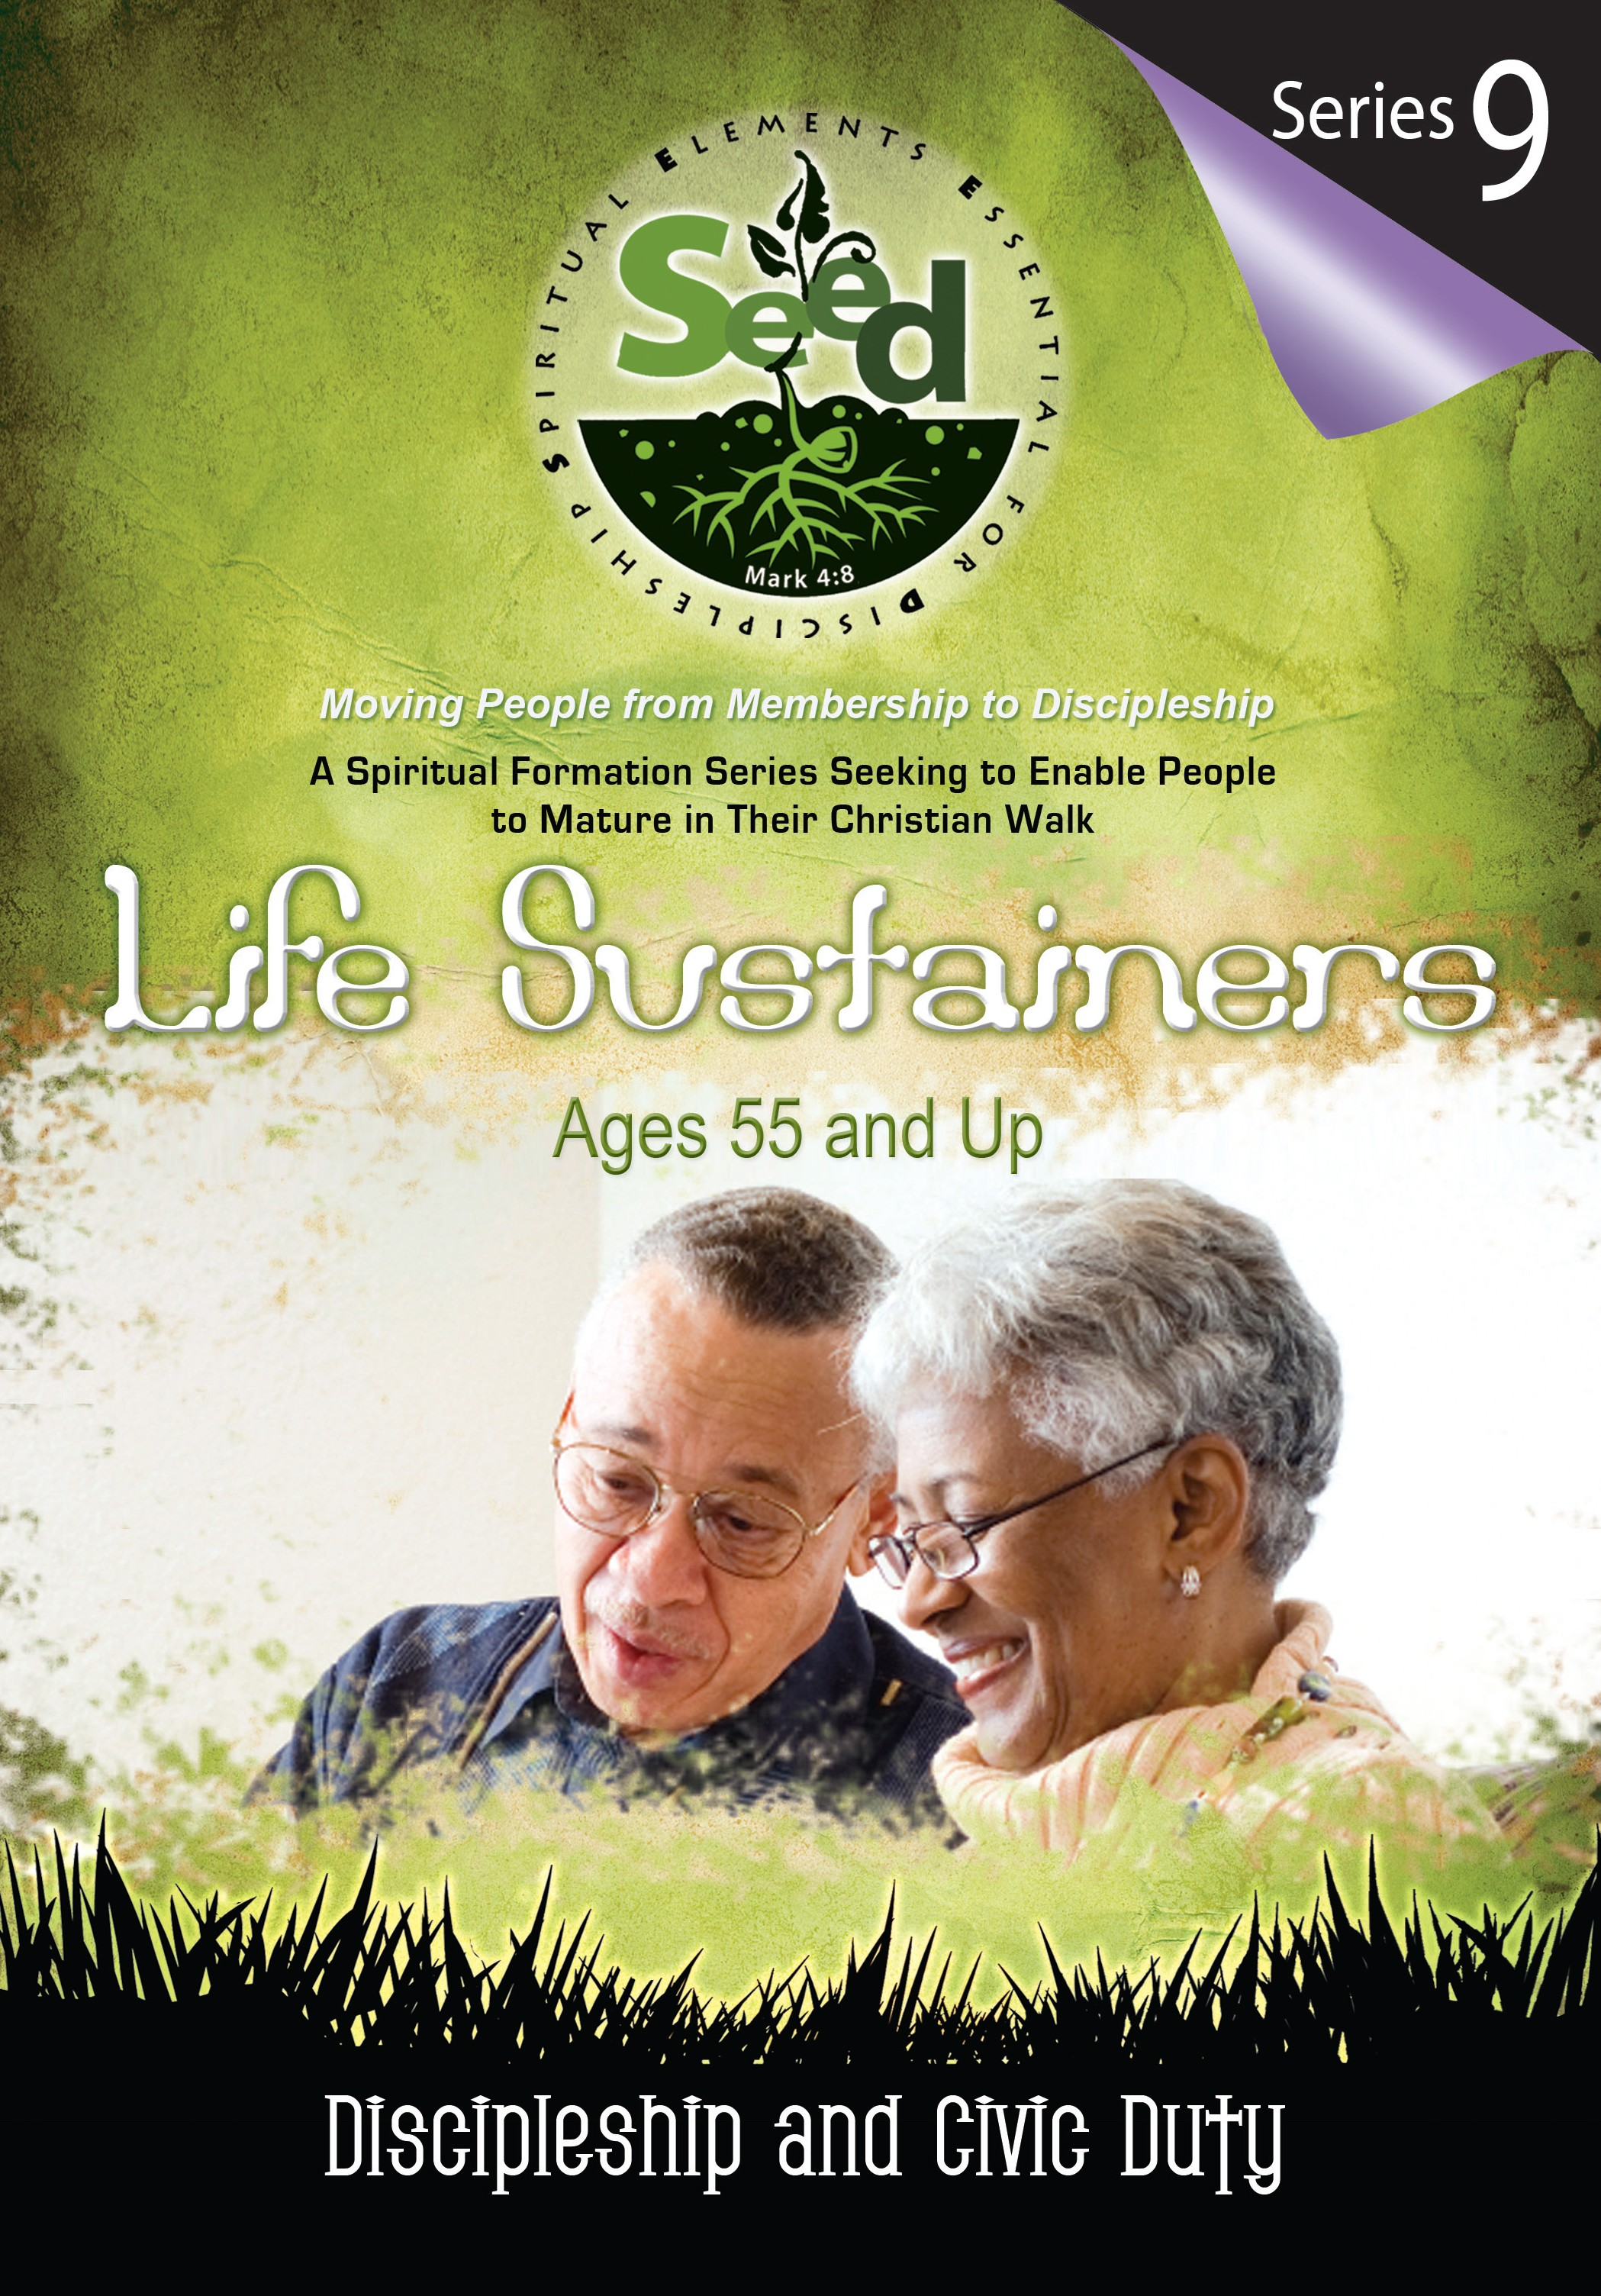 SEED Life Sustainers (Ages 55 and Up): Series 9: Discipleship and Civic Duty